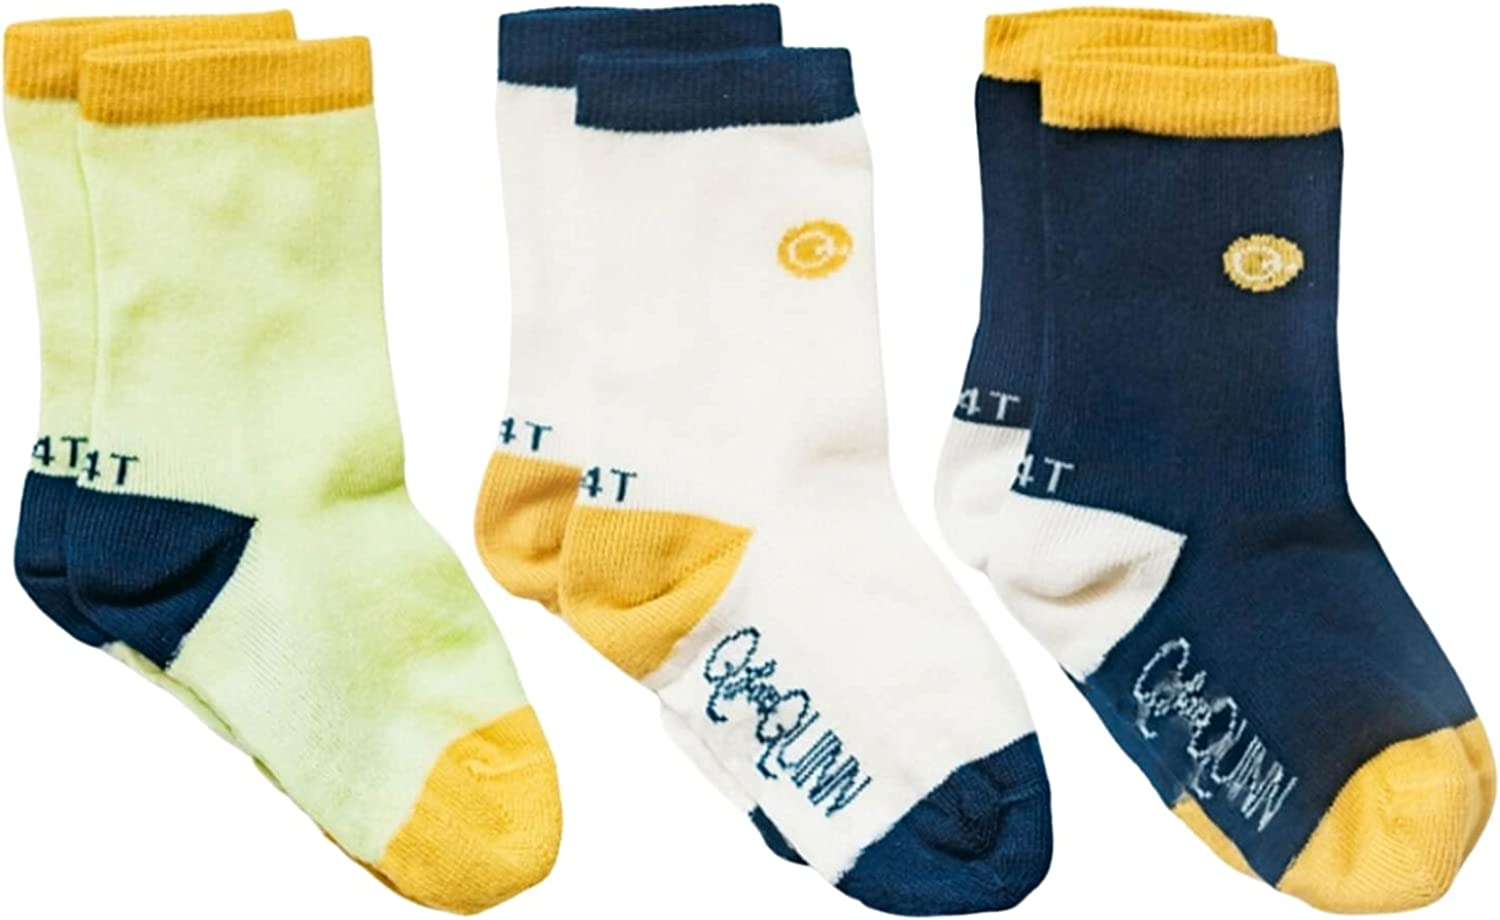 Q for Quinn 3 Pairs Organic Basics Socks for Toddler, Baby, Kids | Soft Breathable Toxic Free